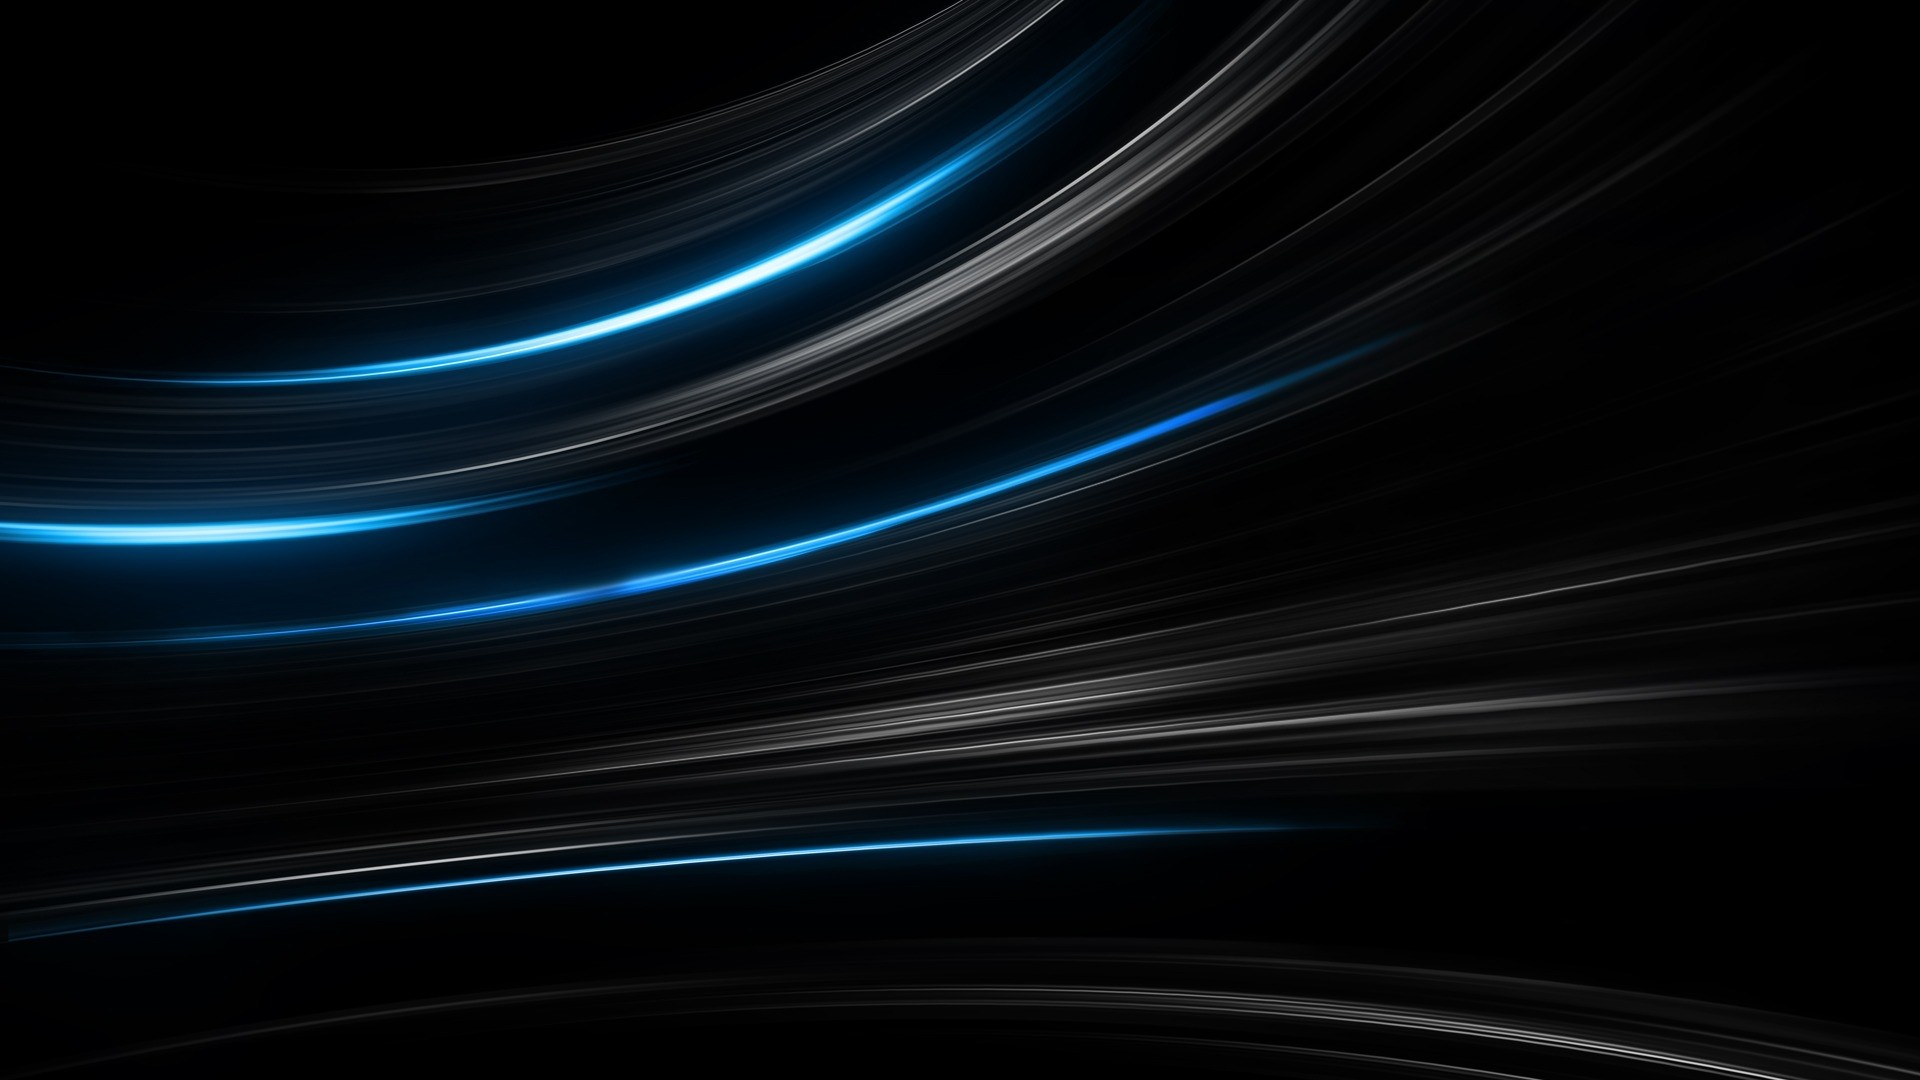 Preview wallpaper black, blue, abstract, stripes 1920×1080